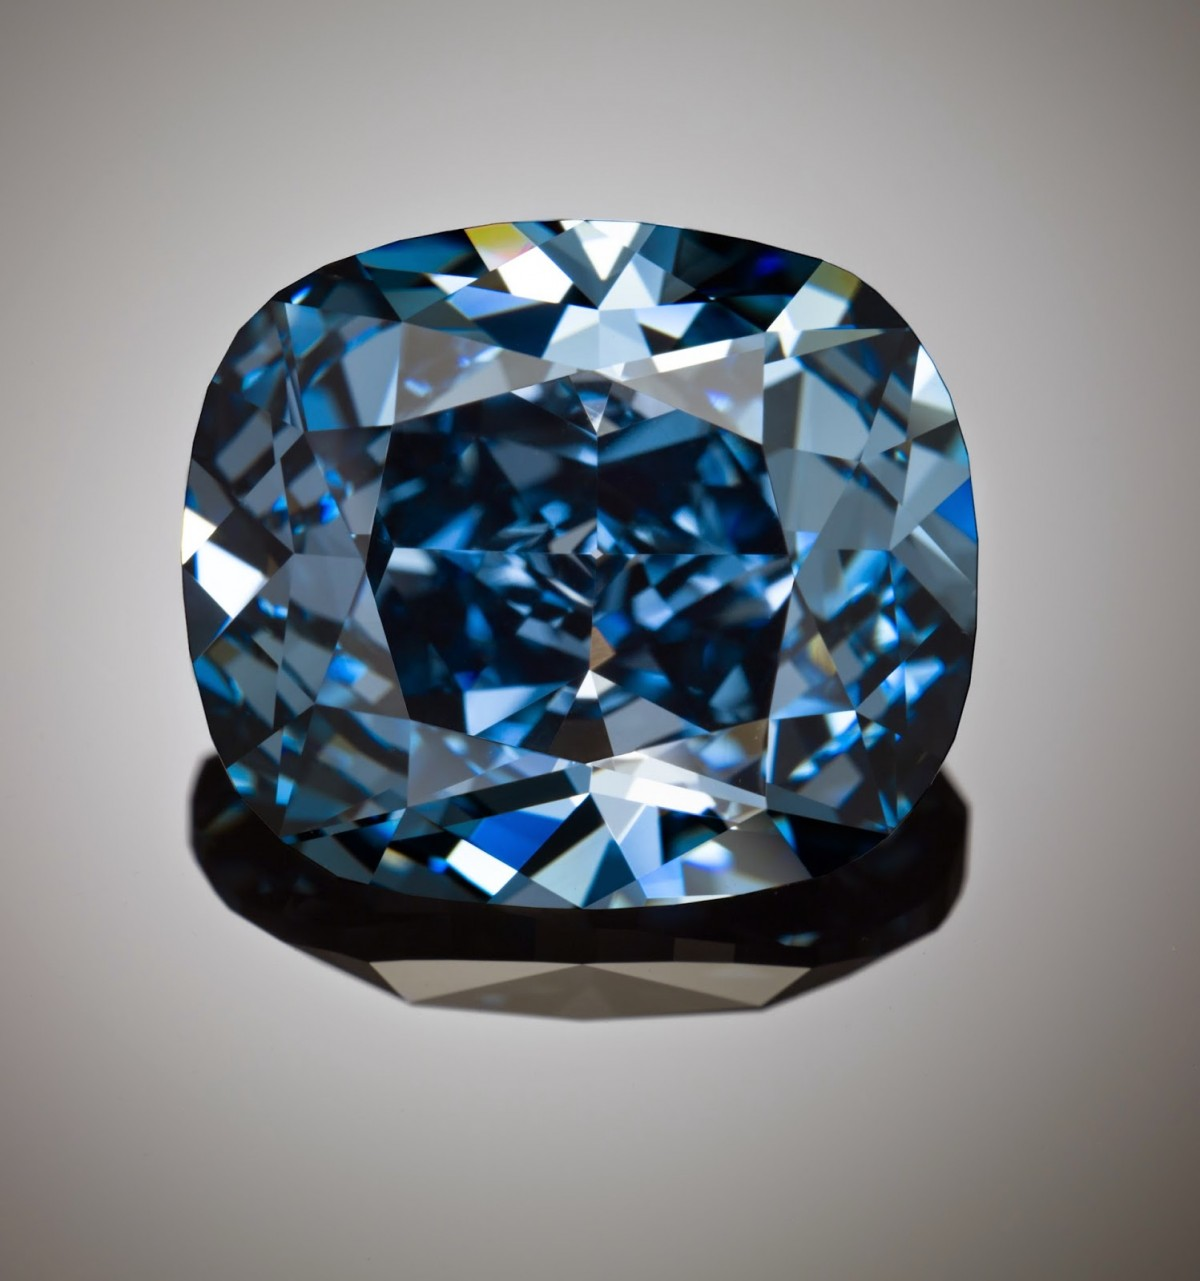 Blue moon diamond reddiam